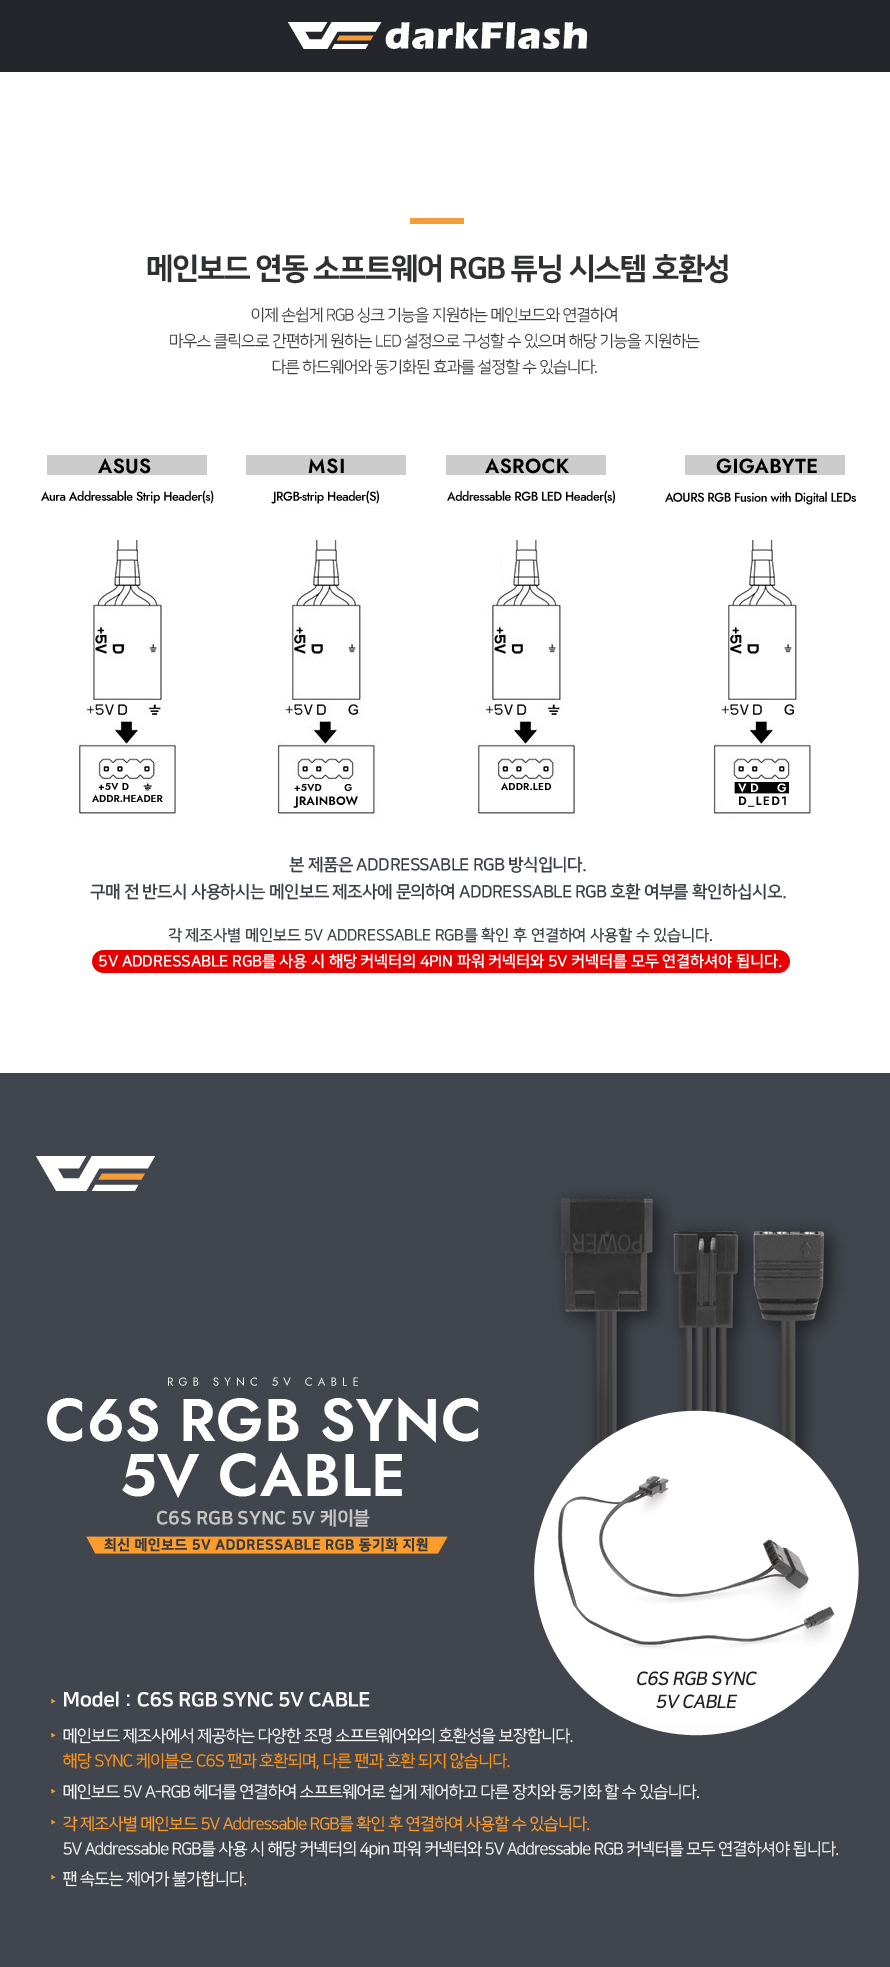 darkFlash C6S RGB SYNC 5V 케이블